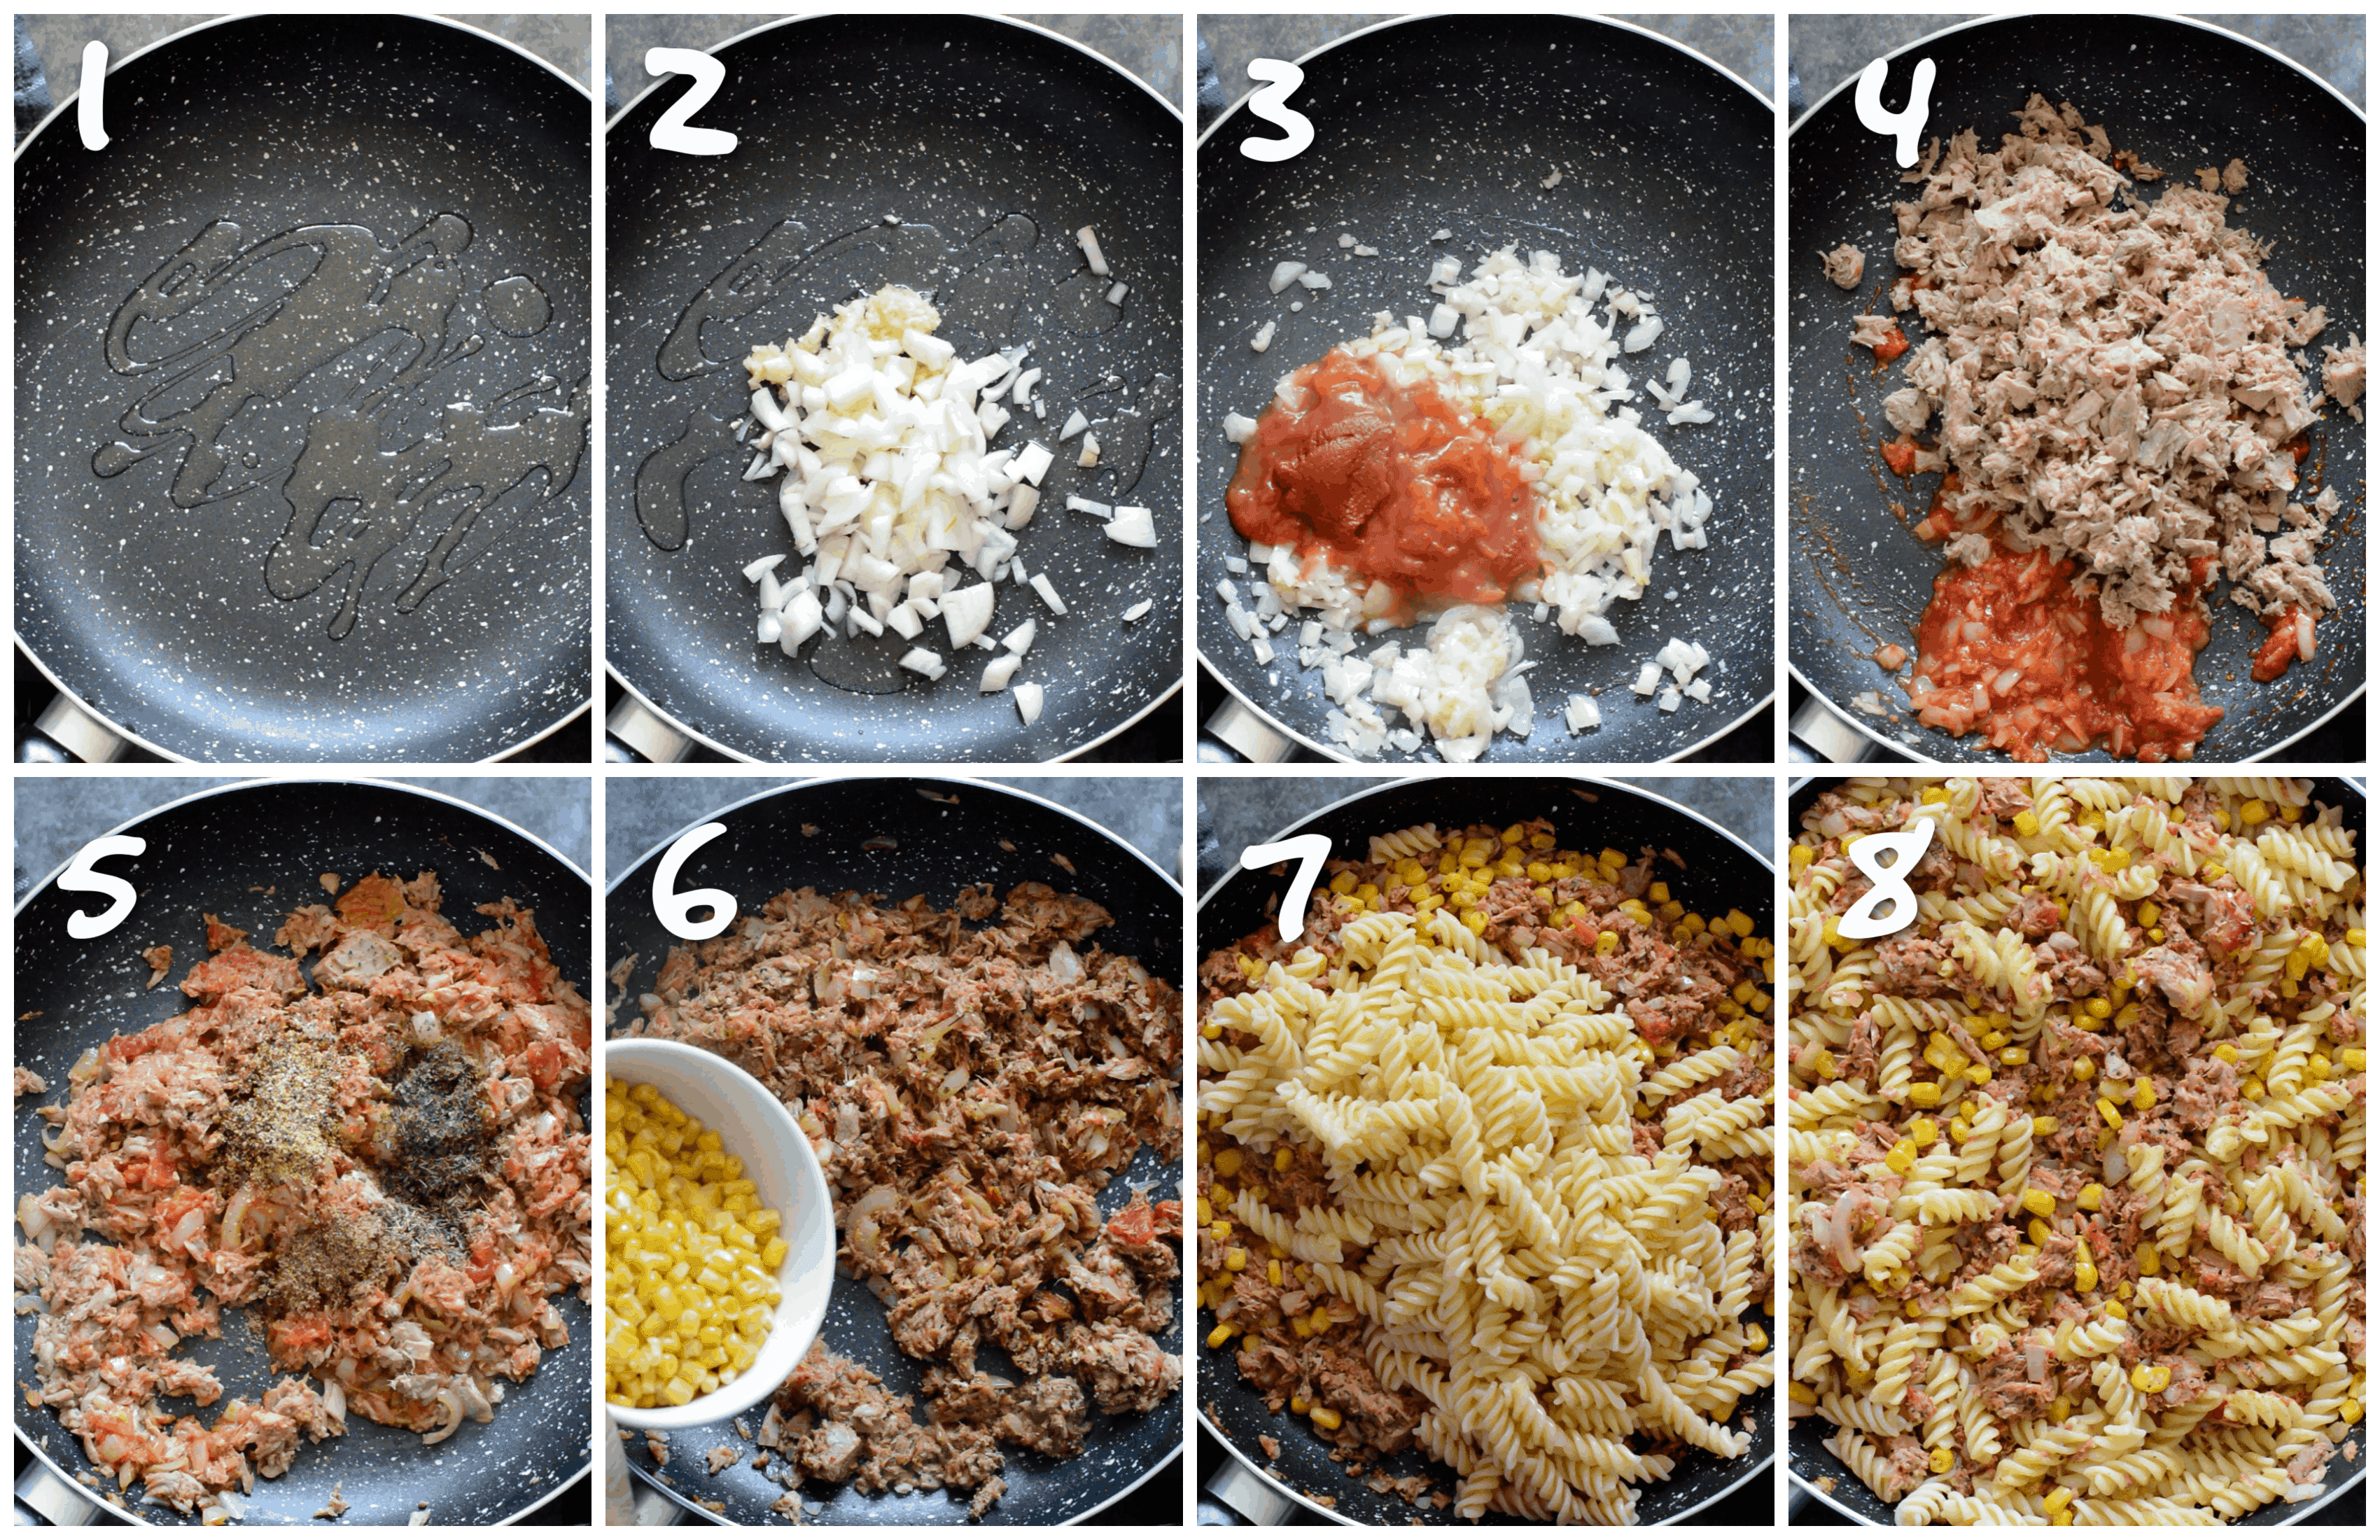 steps1-8 sauteing and adding the tuna, sweet corn and pasta to the skillet